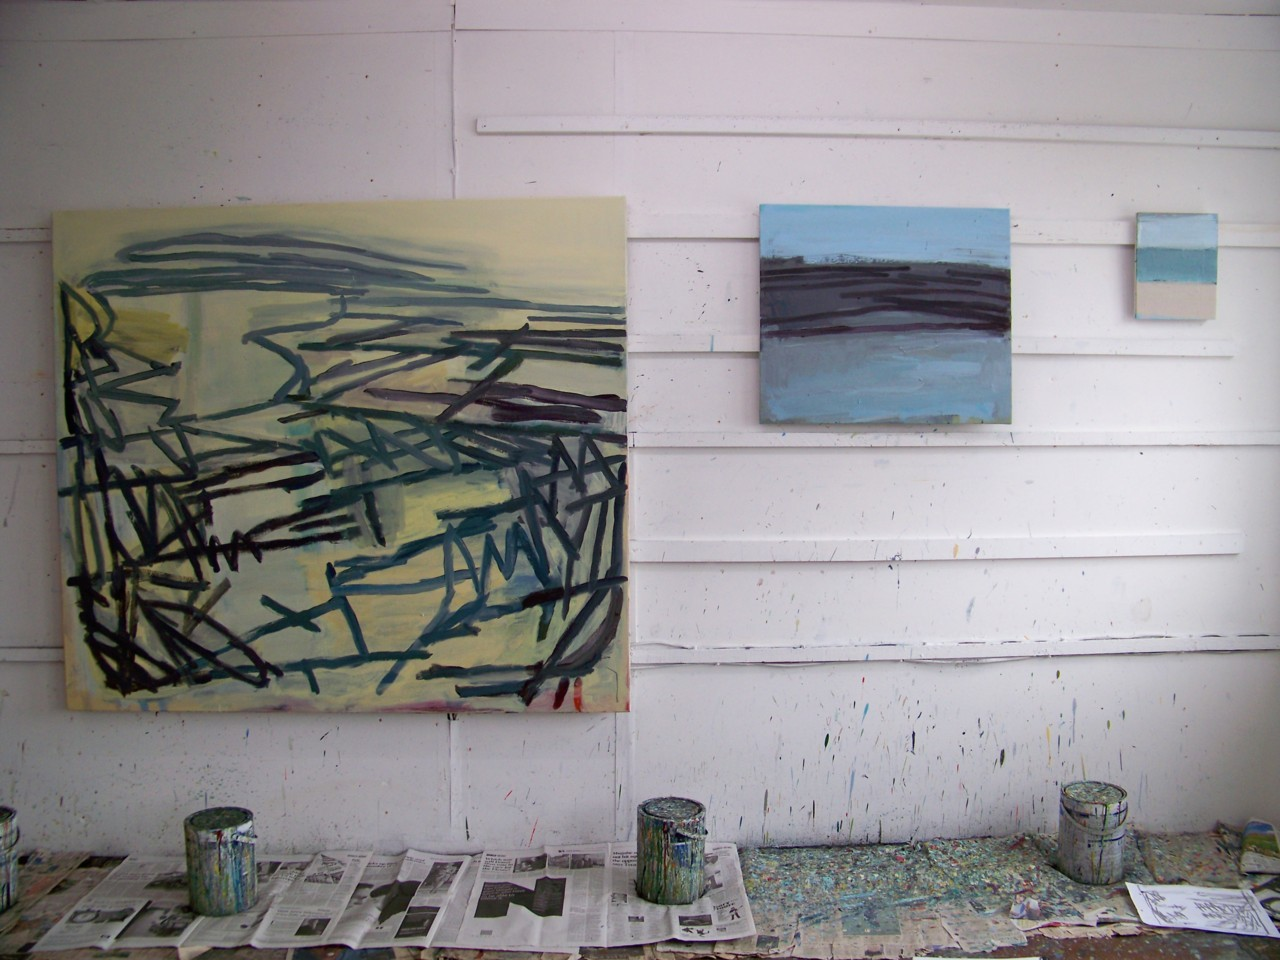 14th March 2012. The studio wall this morning.